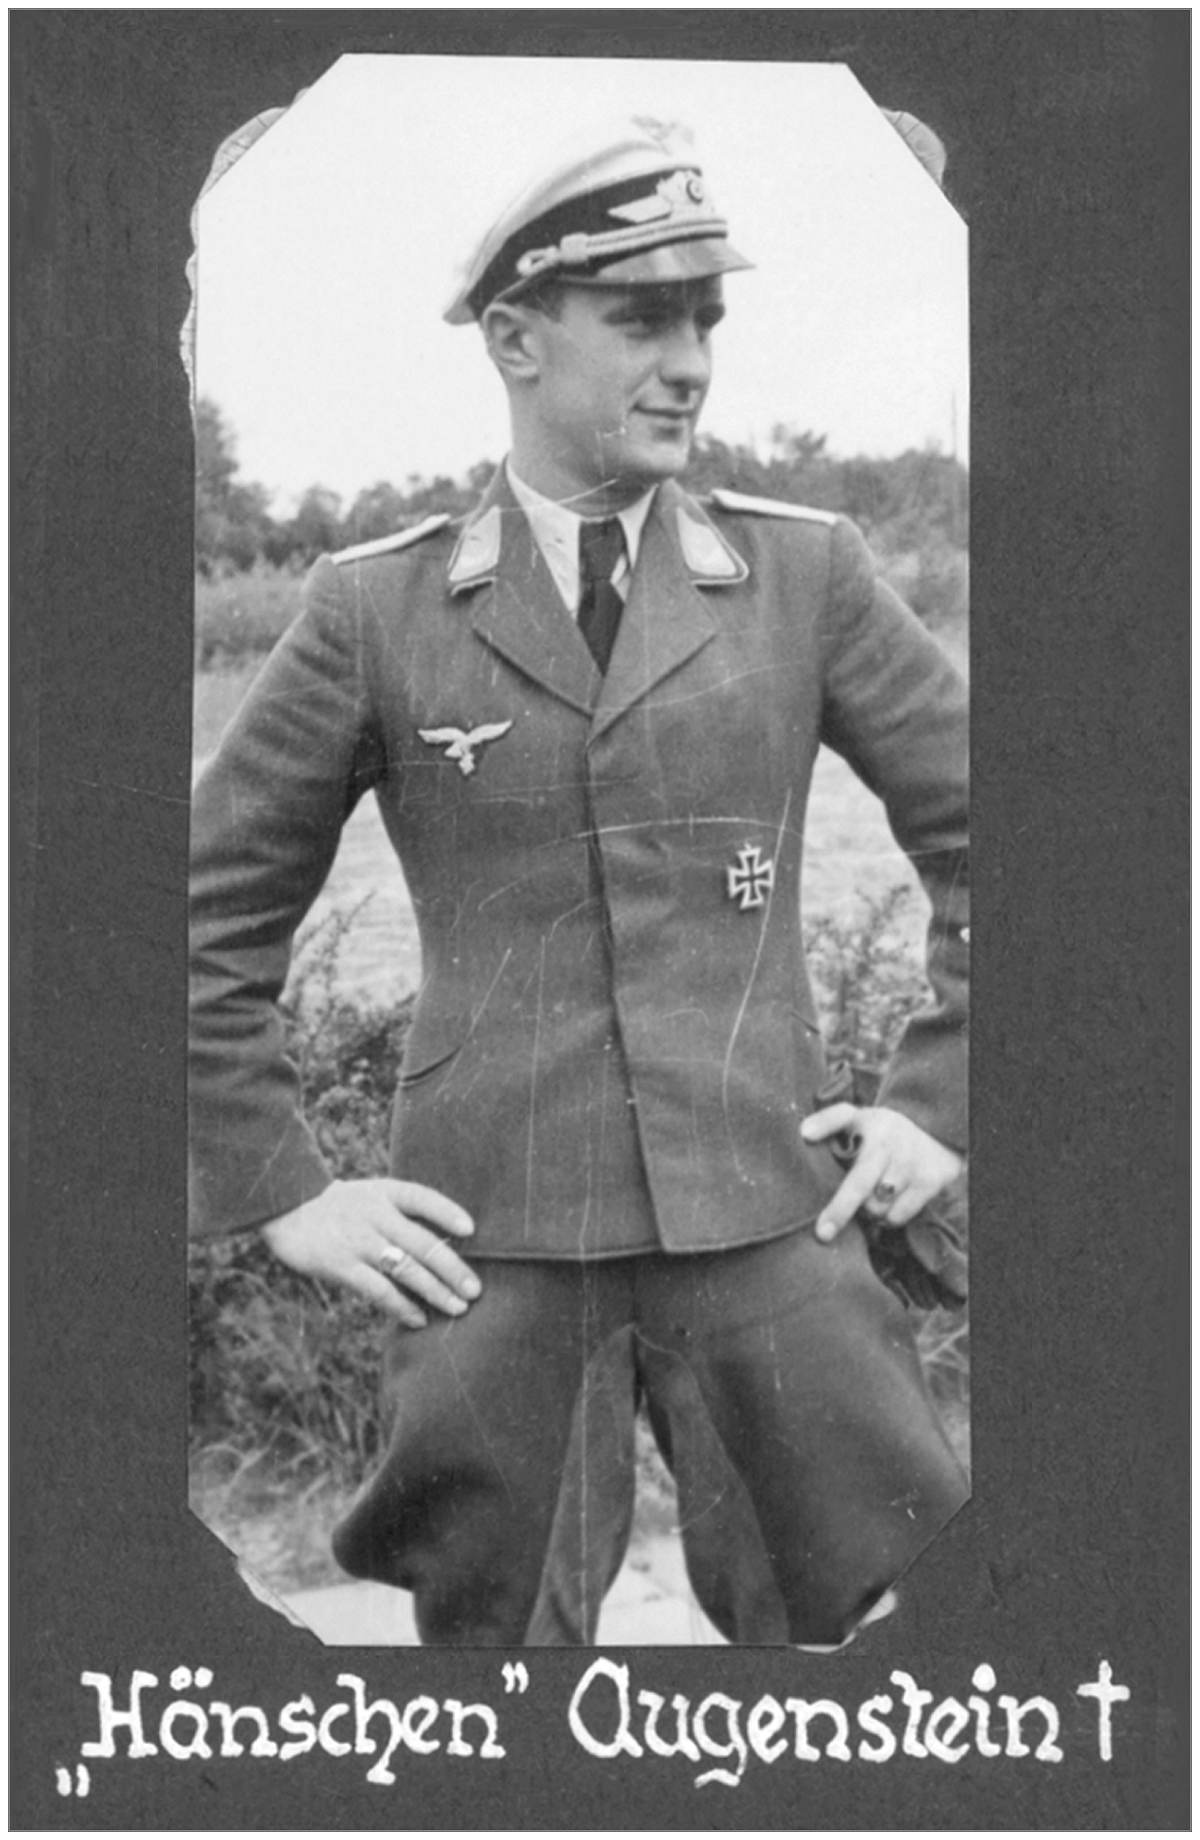 Lt. Hänschen Augenstein - from Rolf Ebhardt (former Nightfighter pilot)